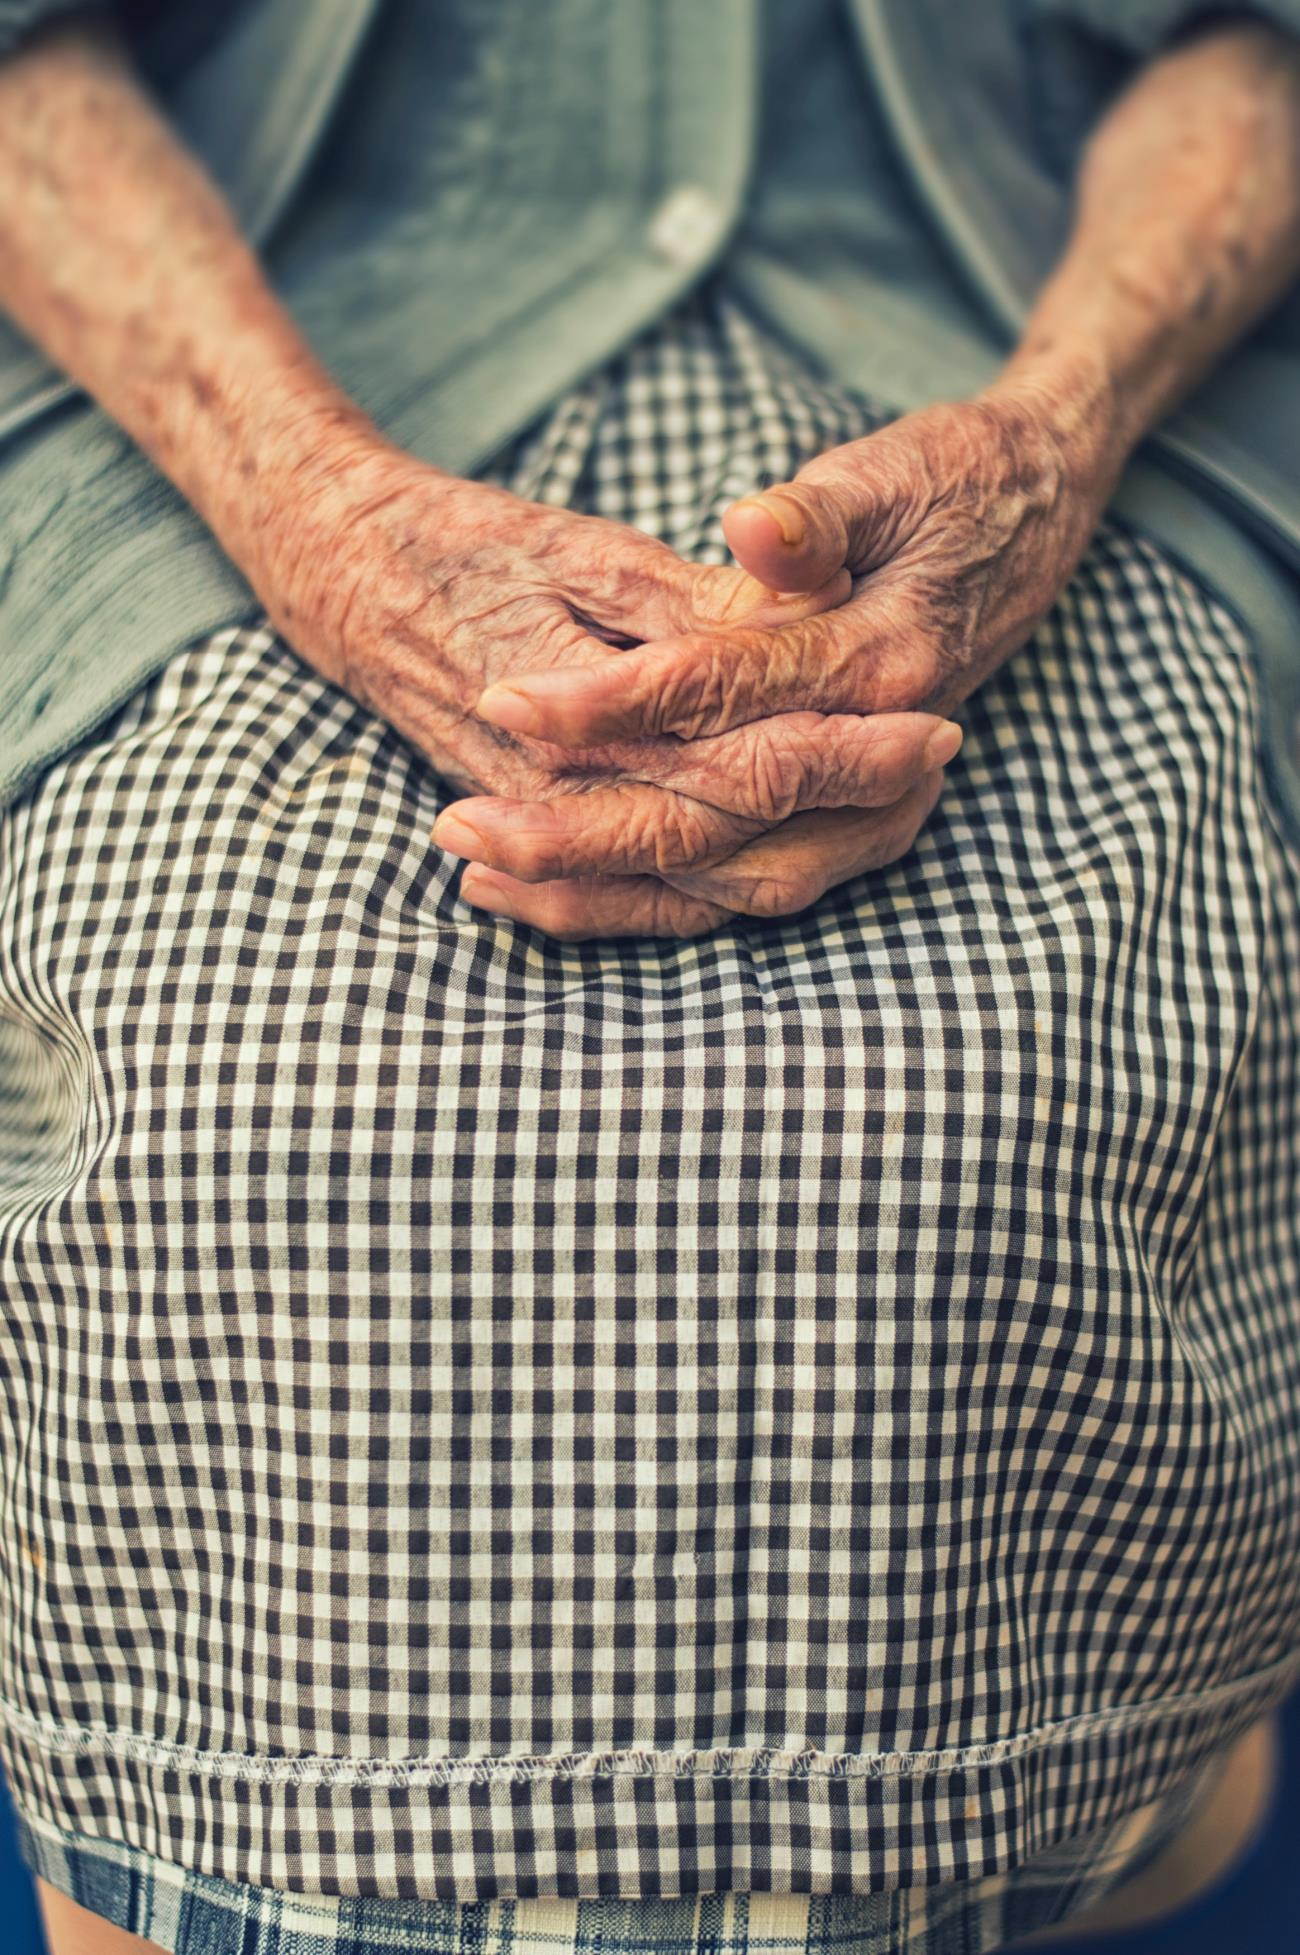 Can you Spot Elder Abuse? June 2020 - Elder Abuse Awareness Month